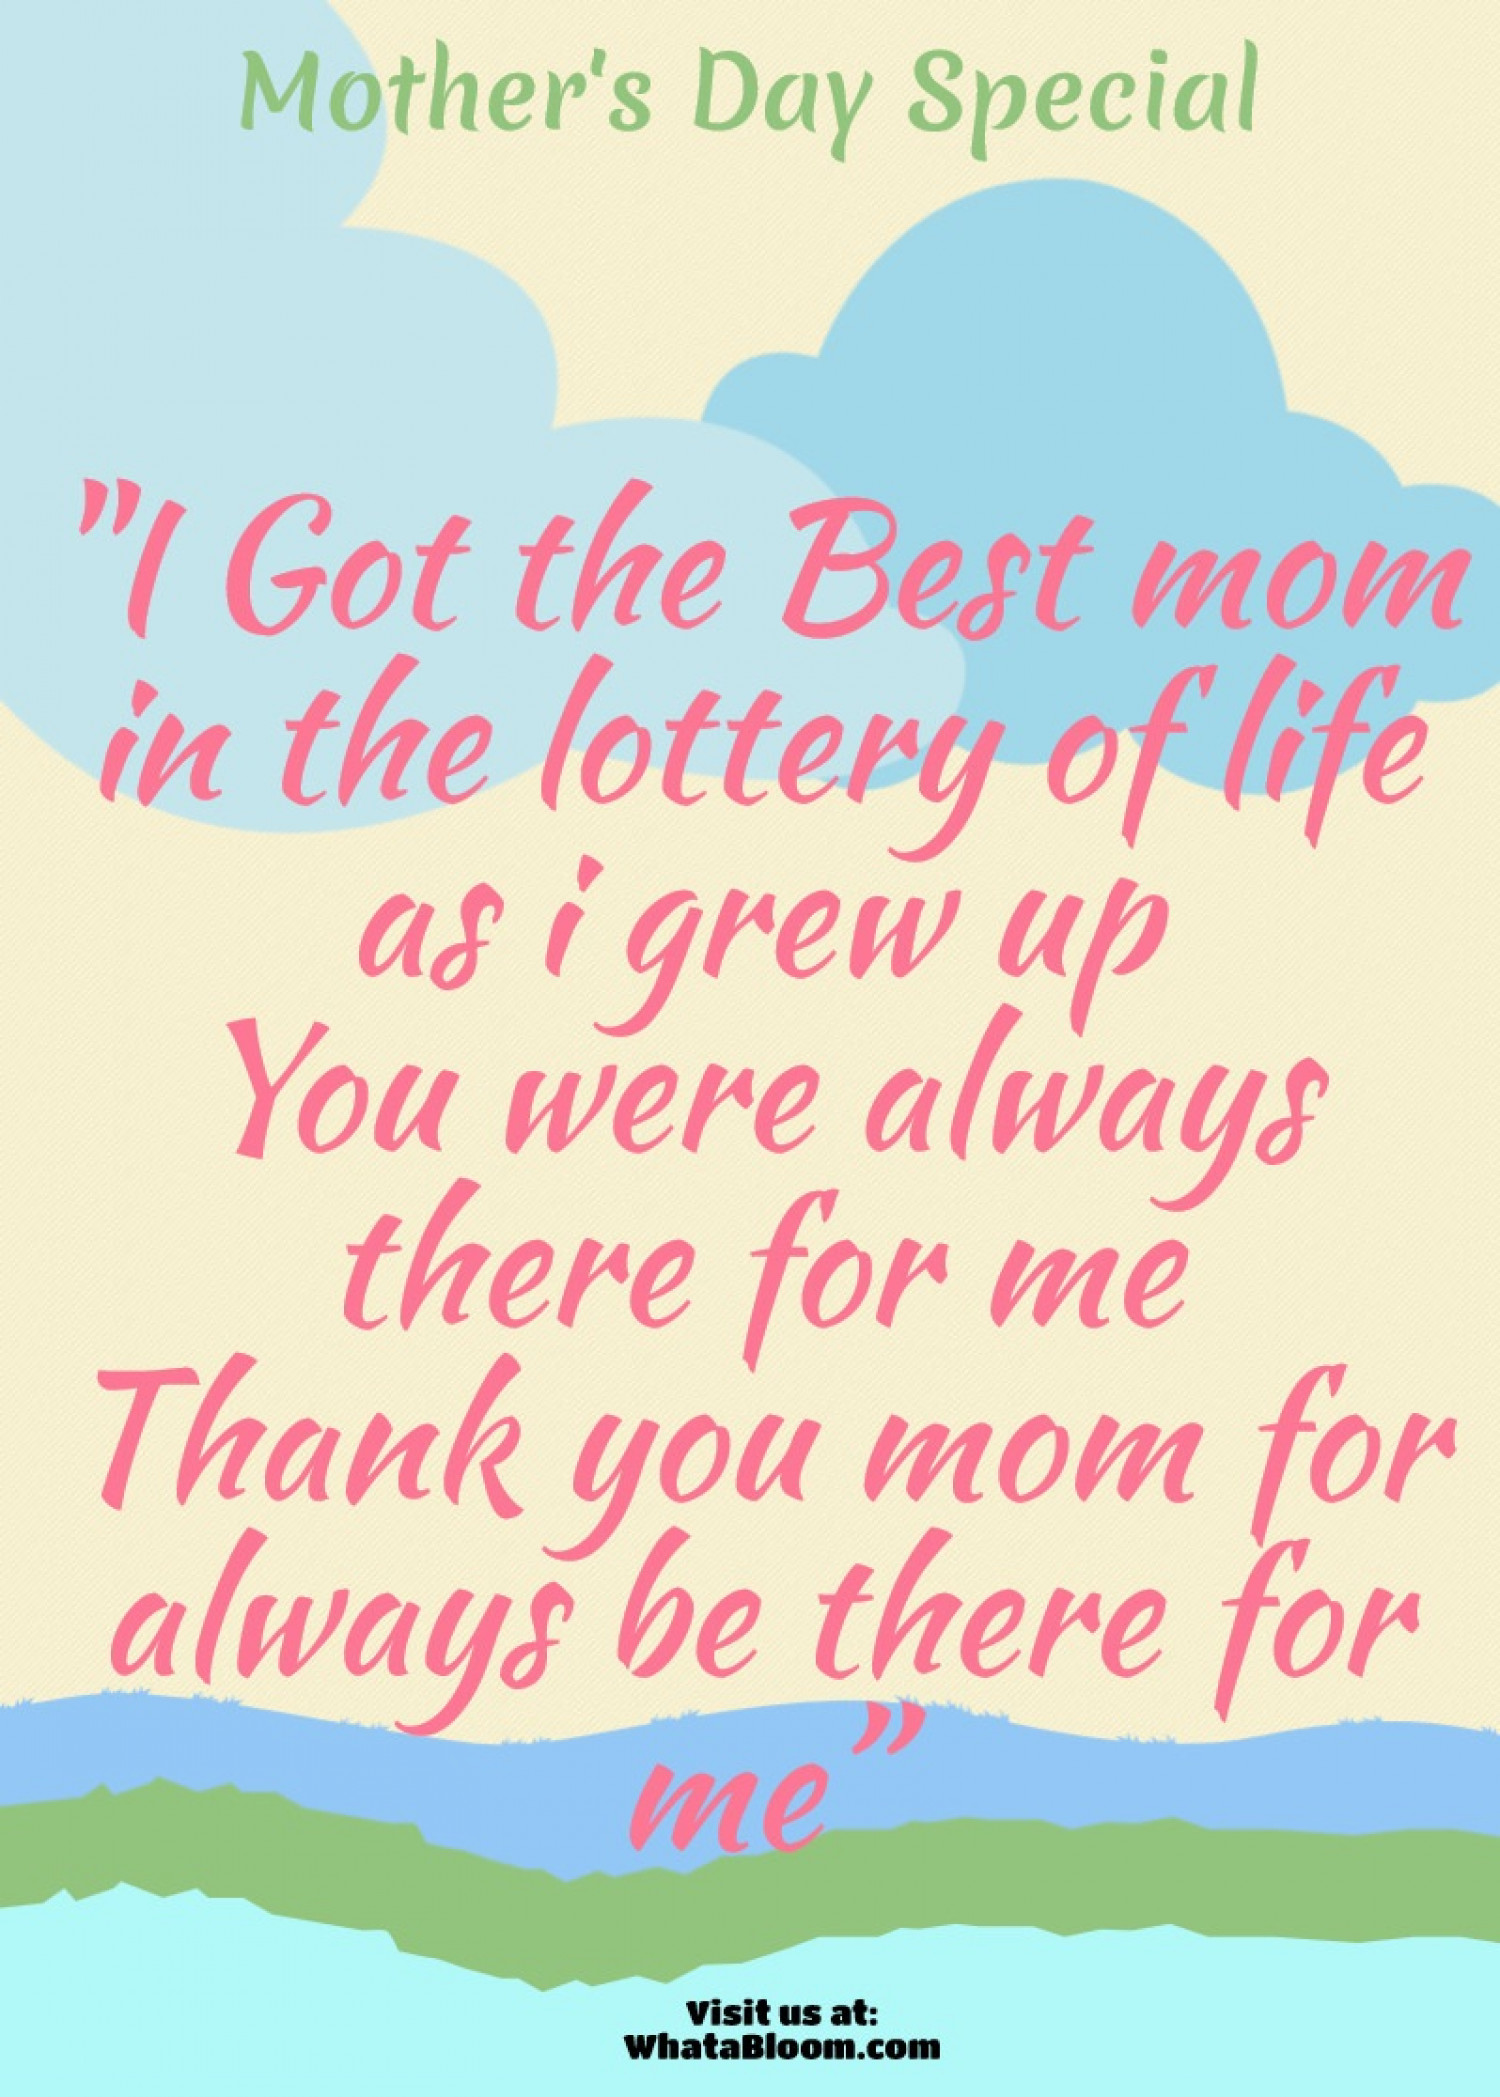 Mothers Day Quotes Best Mother's Day Quote  Visual.ly